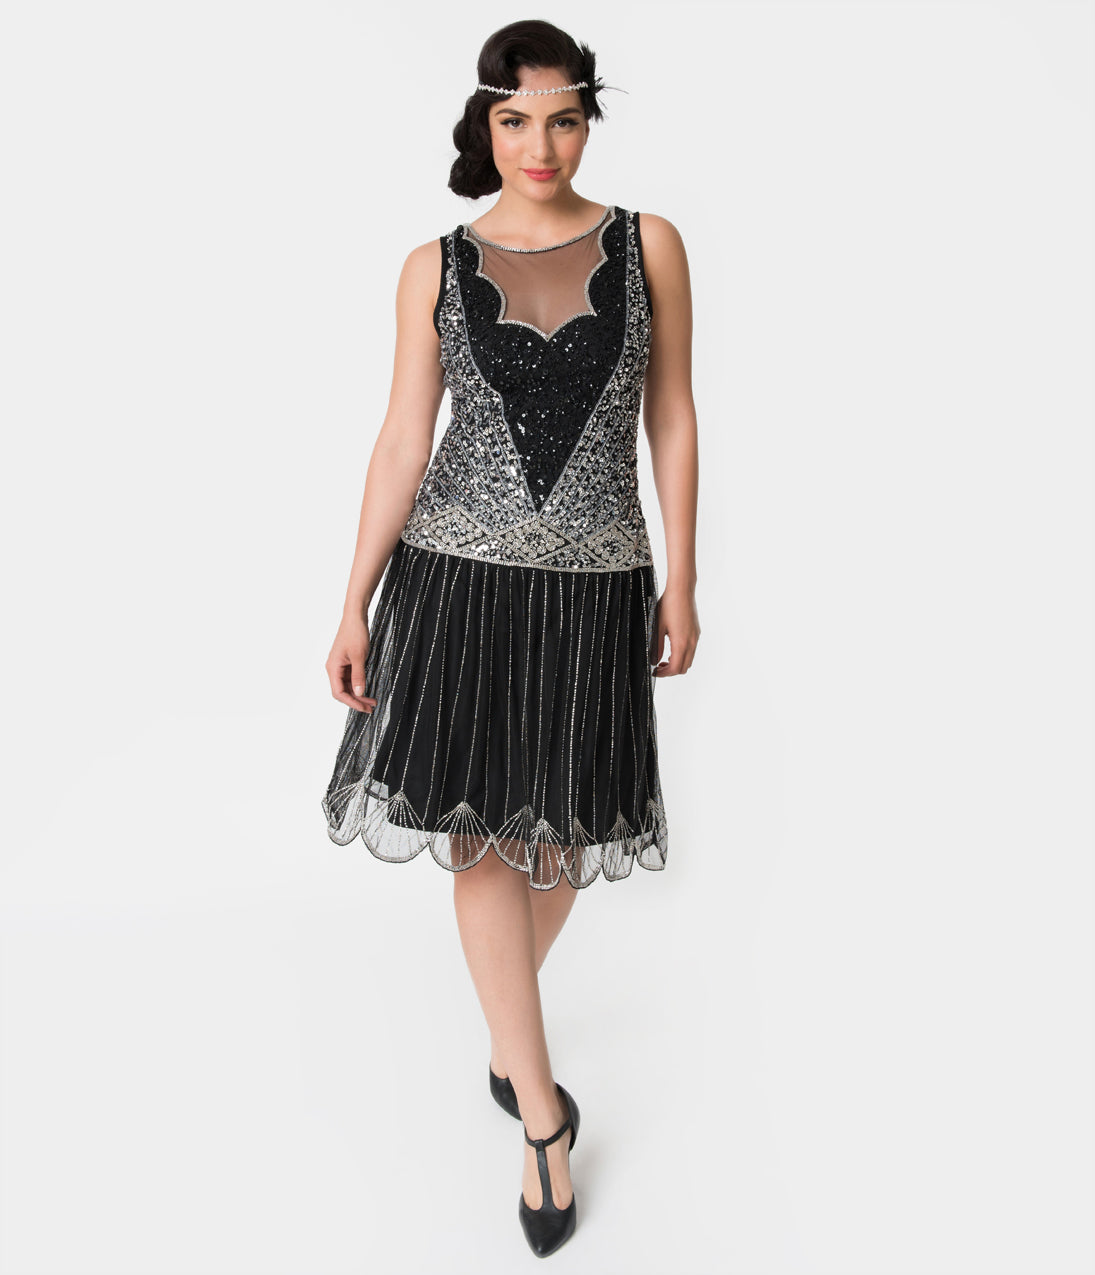 1920s Style Dresses, Flapper Dresses 1920S Style Black  Silver Beaded Deco Elaina Flapper Dress $148.00 AT vintagedancer.com